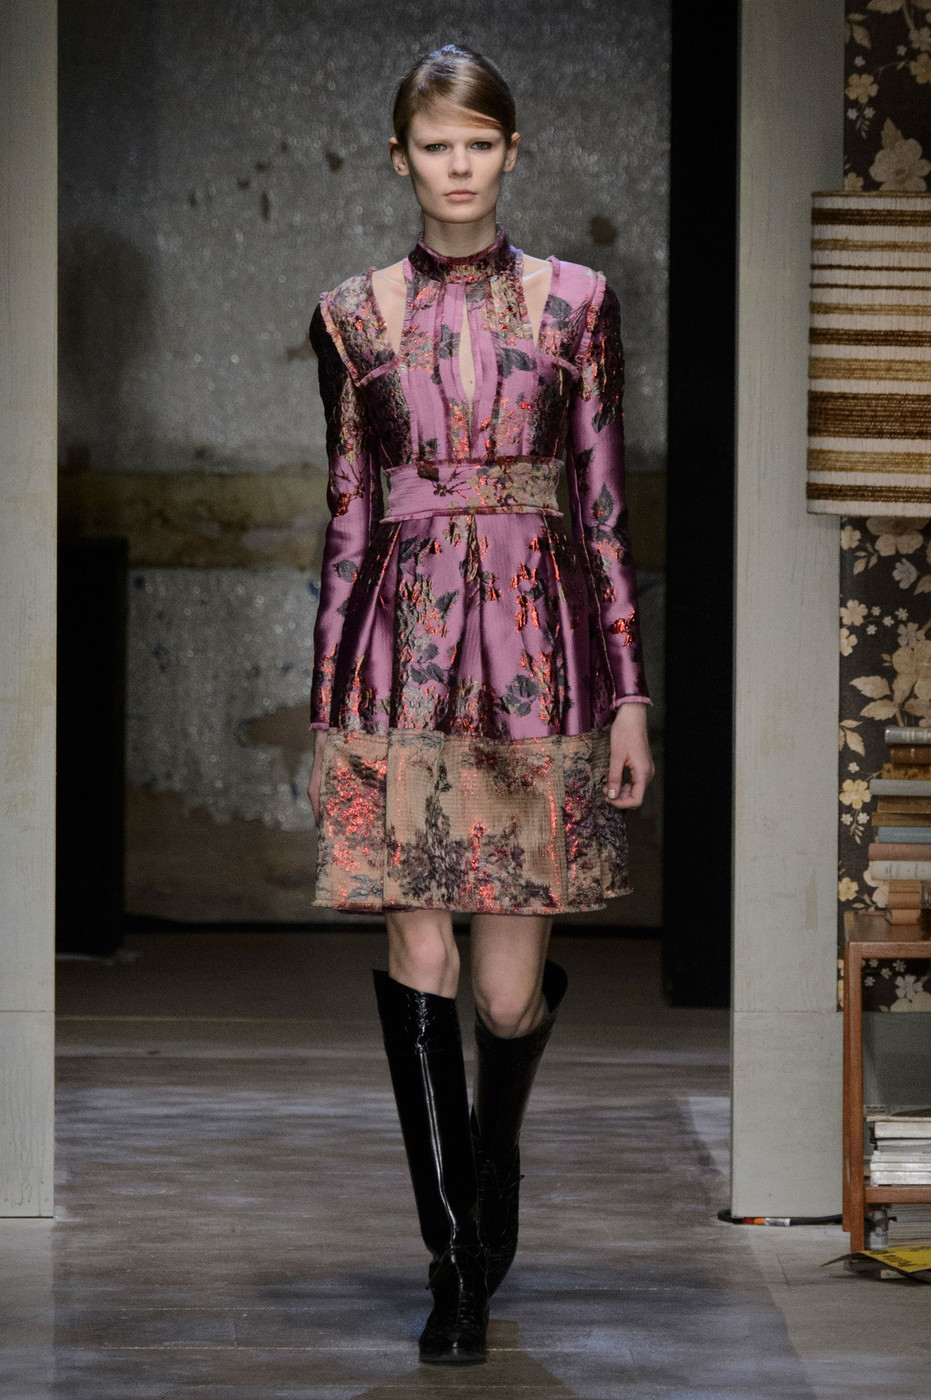 Erdem Fall Winter 2018 2019 Fashion Show: Erdem Fall 2015 Runway Pictures